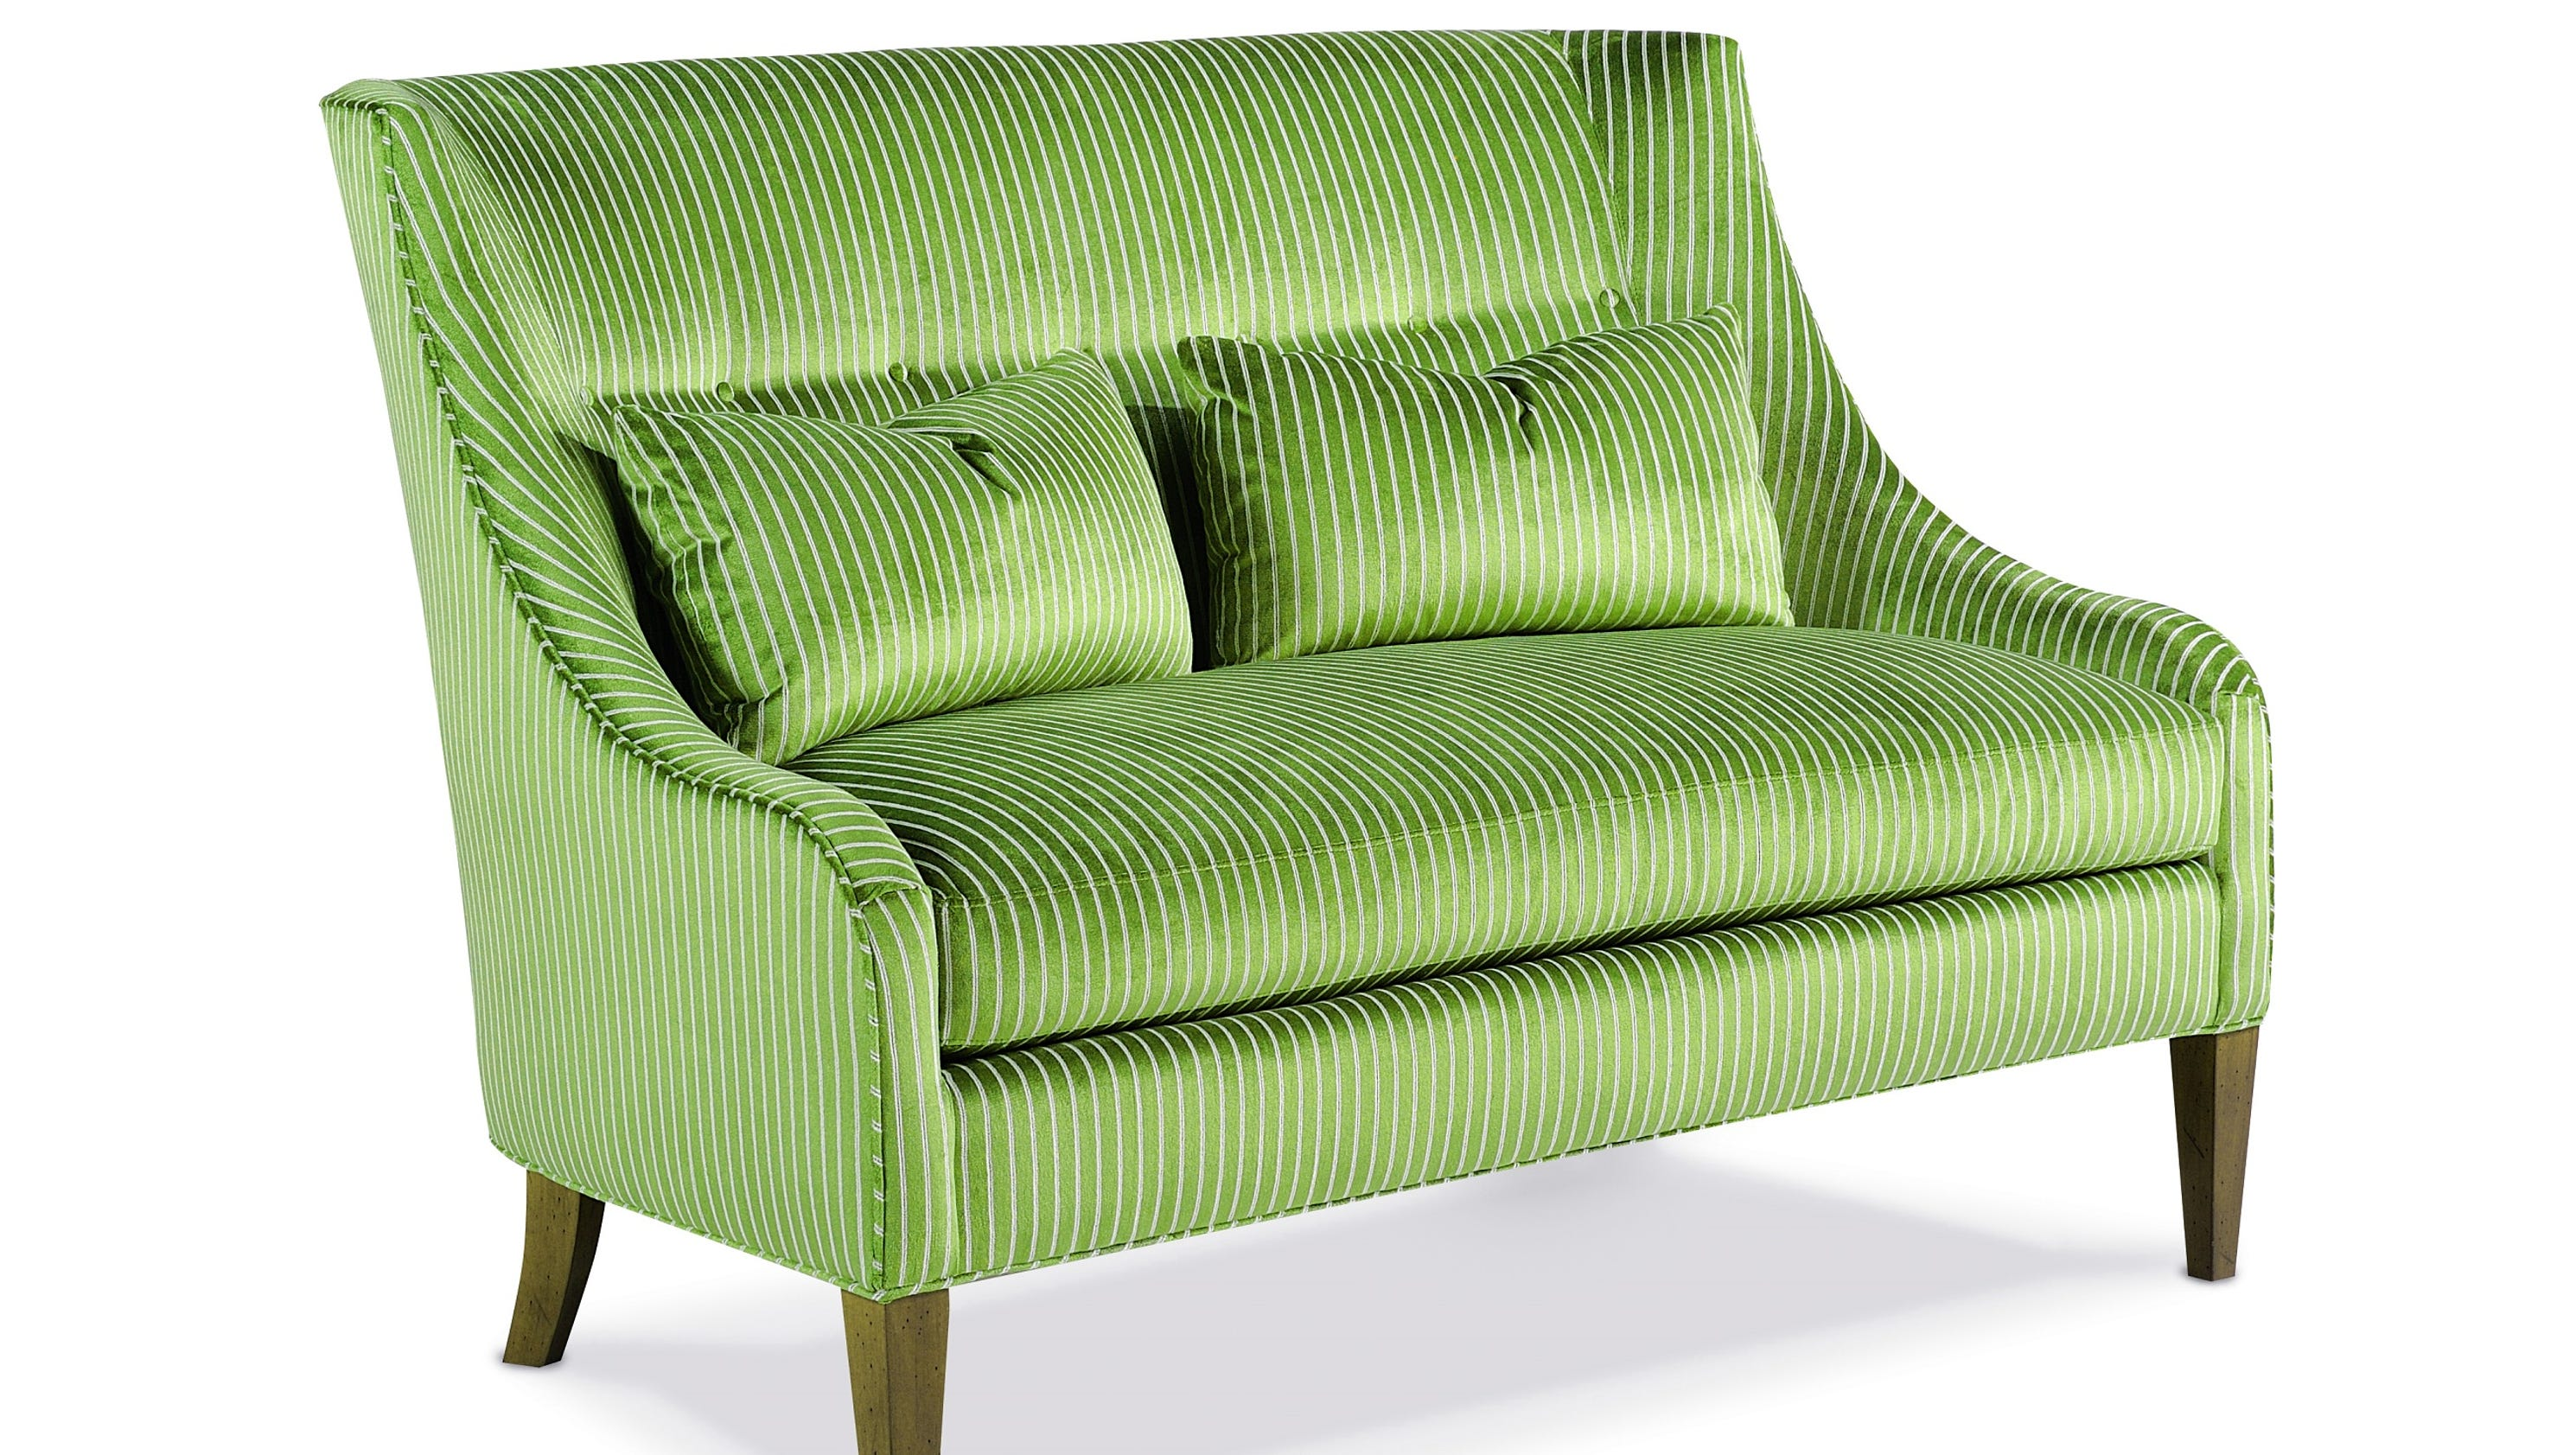 Pantone color of year is revitalizing shade of green